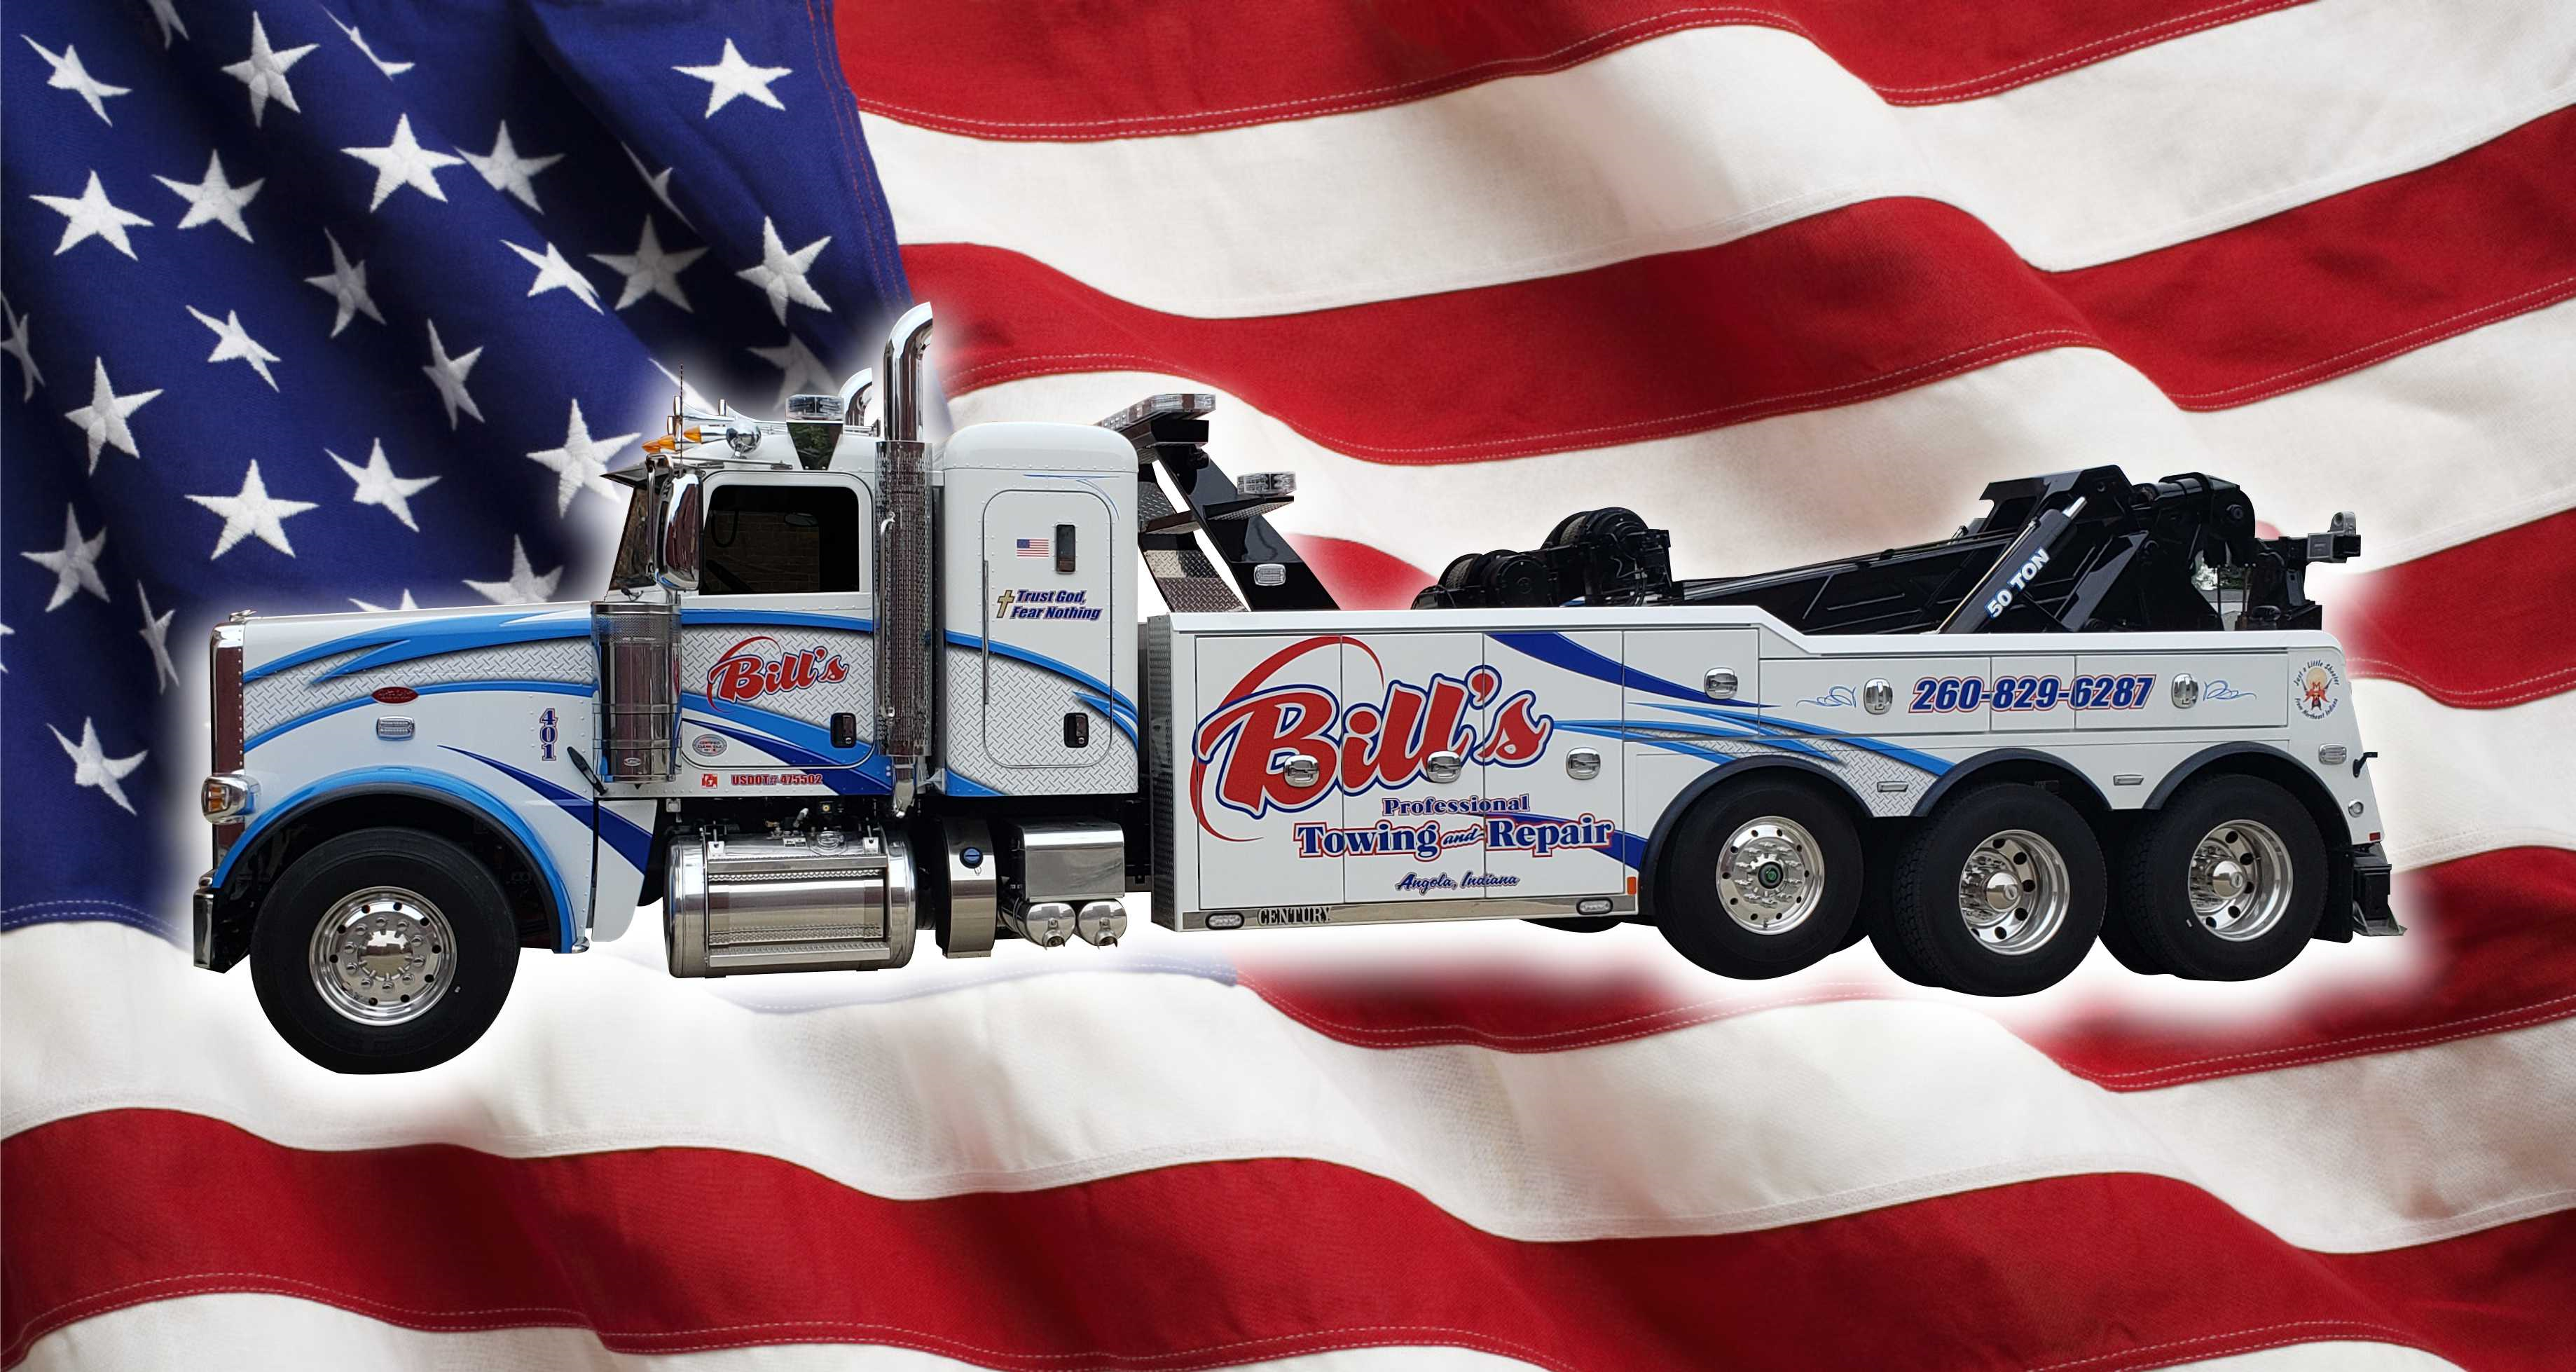 Bill S Professional Towing Amp Repair Fremont In On Truckdown